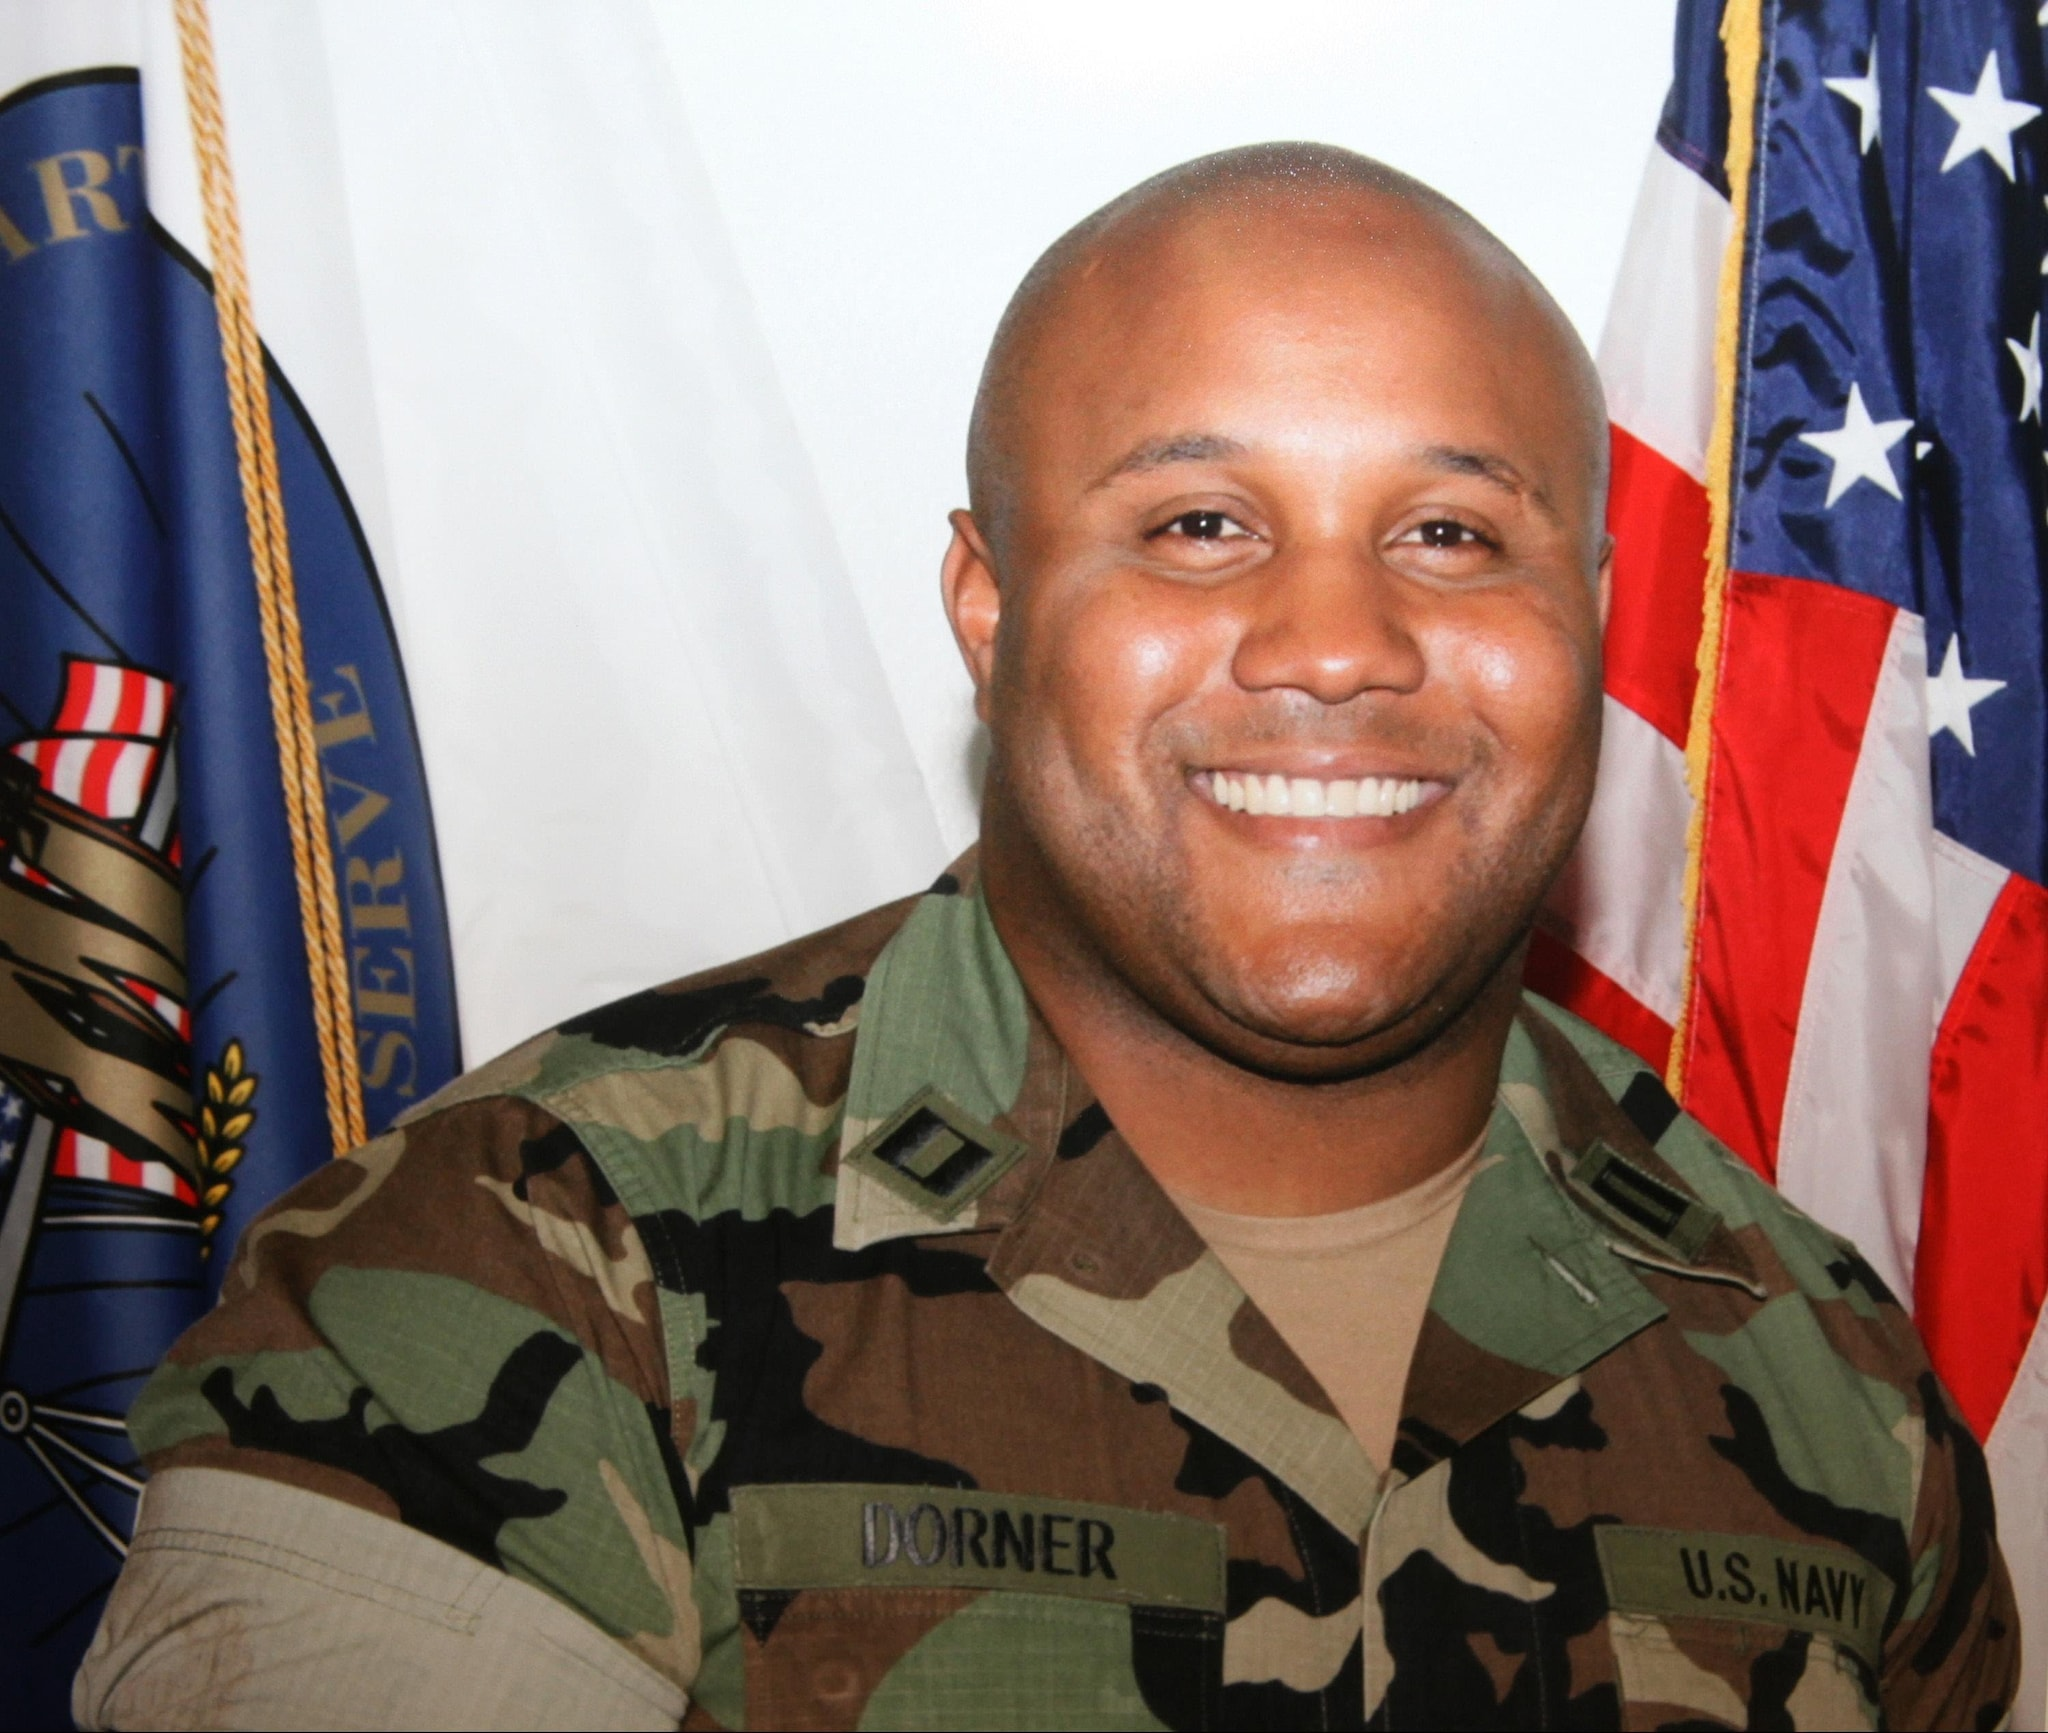 Undated photo released by the Los Angeles Police Department shows suspect Christopher Dorner in his naval uniform (Photo: LAPD)